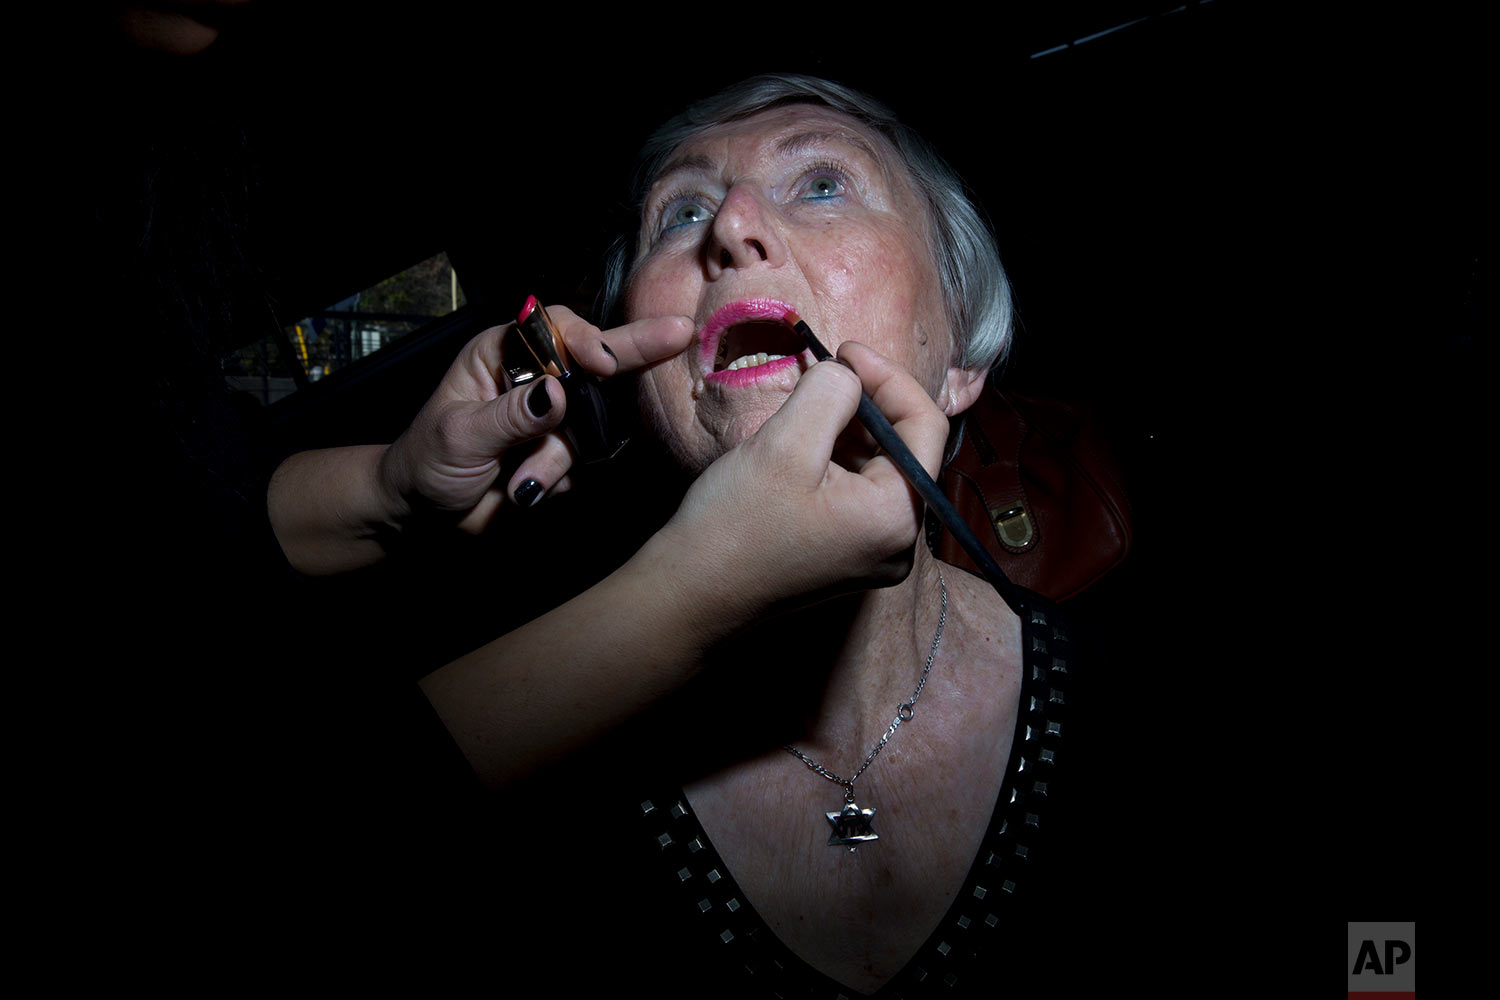 Holocaust survivor Hannah Beker, 79, gets her makeup ready during a Beauty Heroines event in Ramat Gan, Israel, Monday, April 9, 2018.  (AP Photo/Oded Balilty)